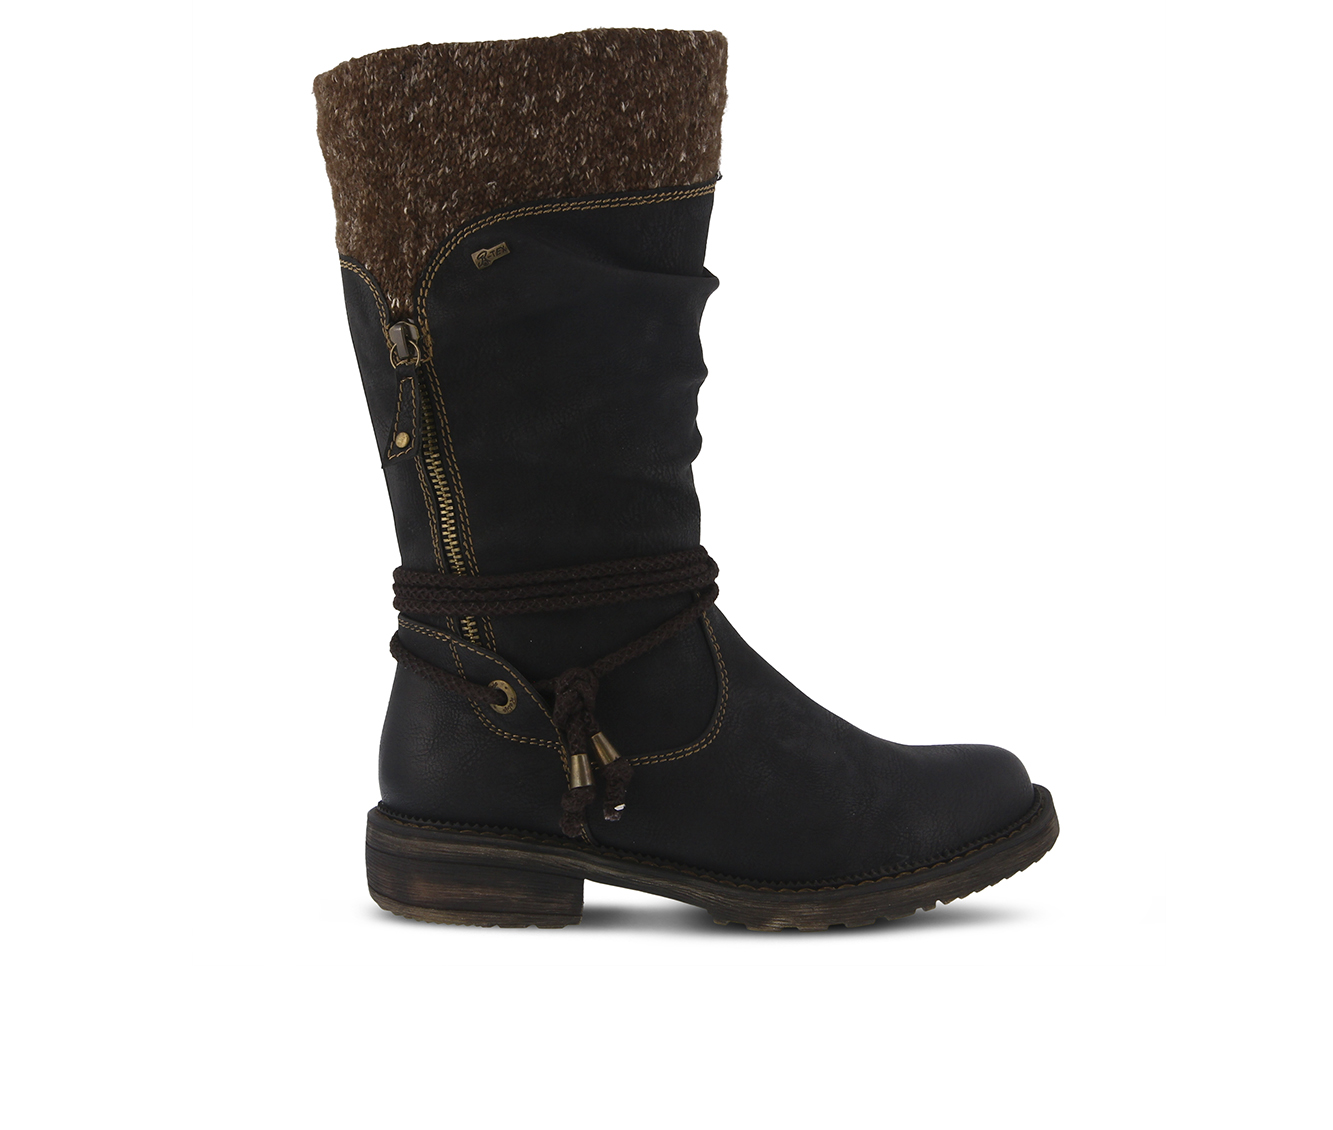 SPRING STEP Acaphine Women's Boots (Black Faux Leather)